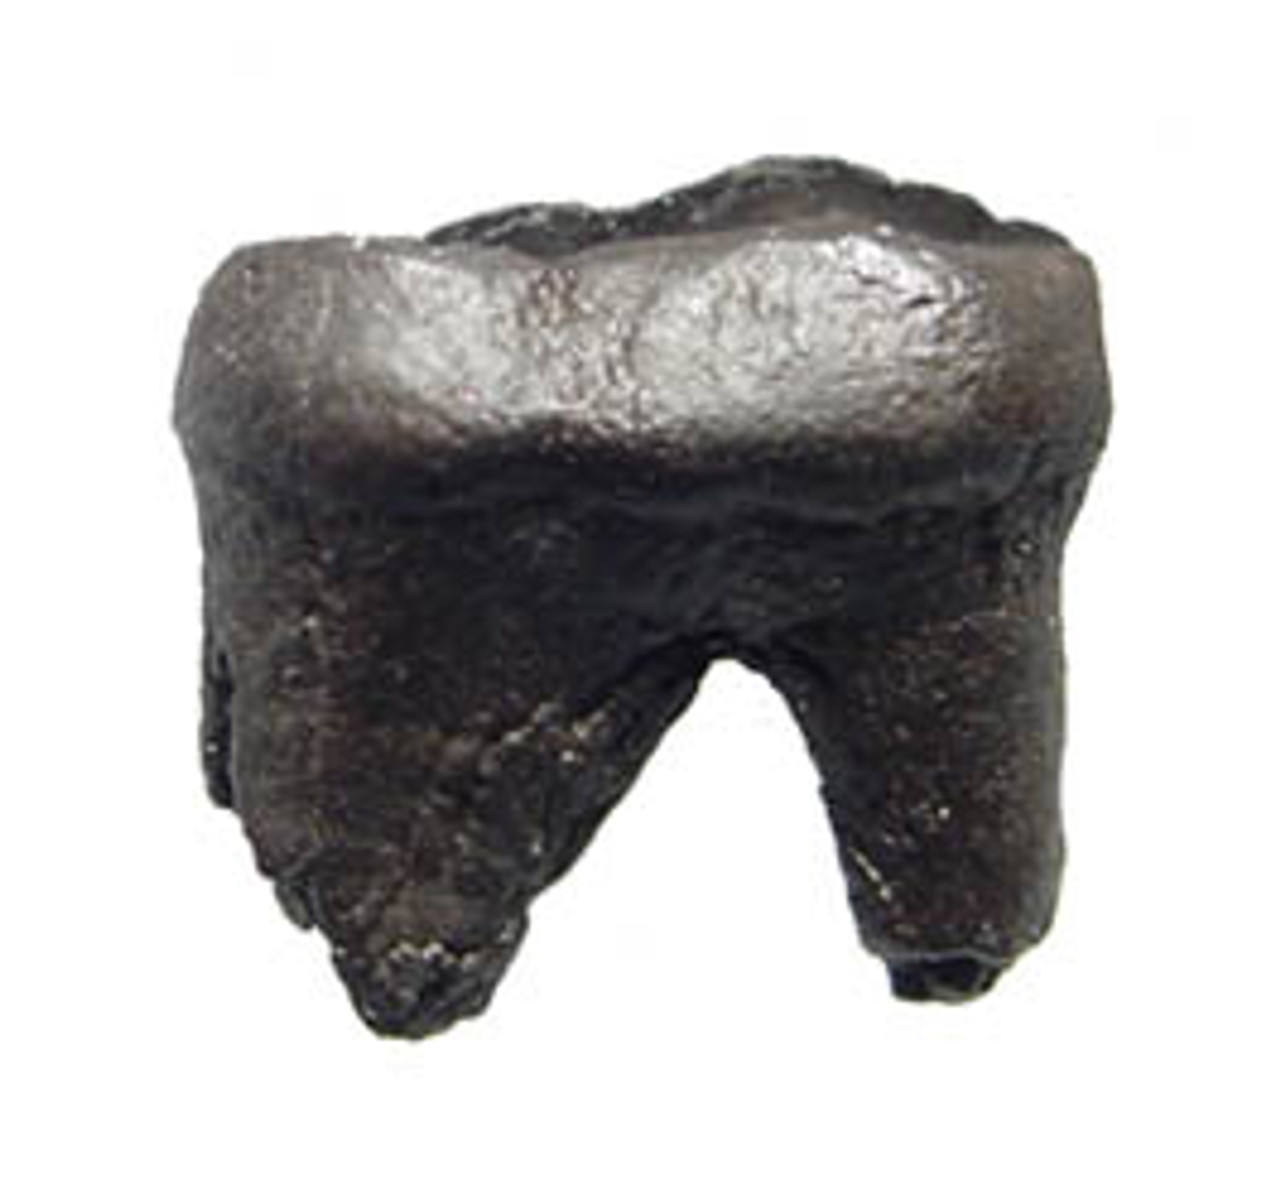 LM49-002 - EXTINCT SHORT-FACED BEAR MOLAR TOOTH WITH ROOT